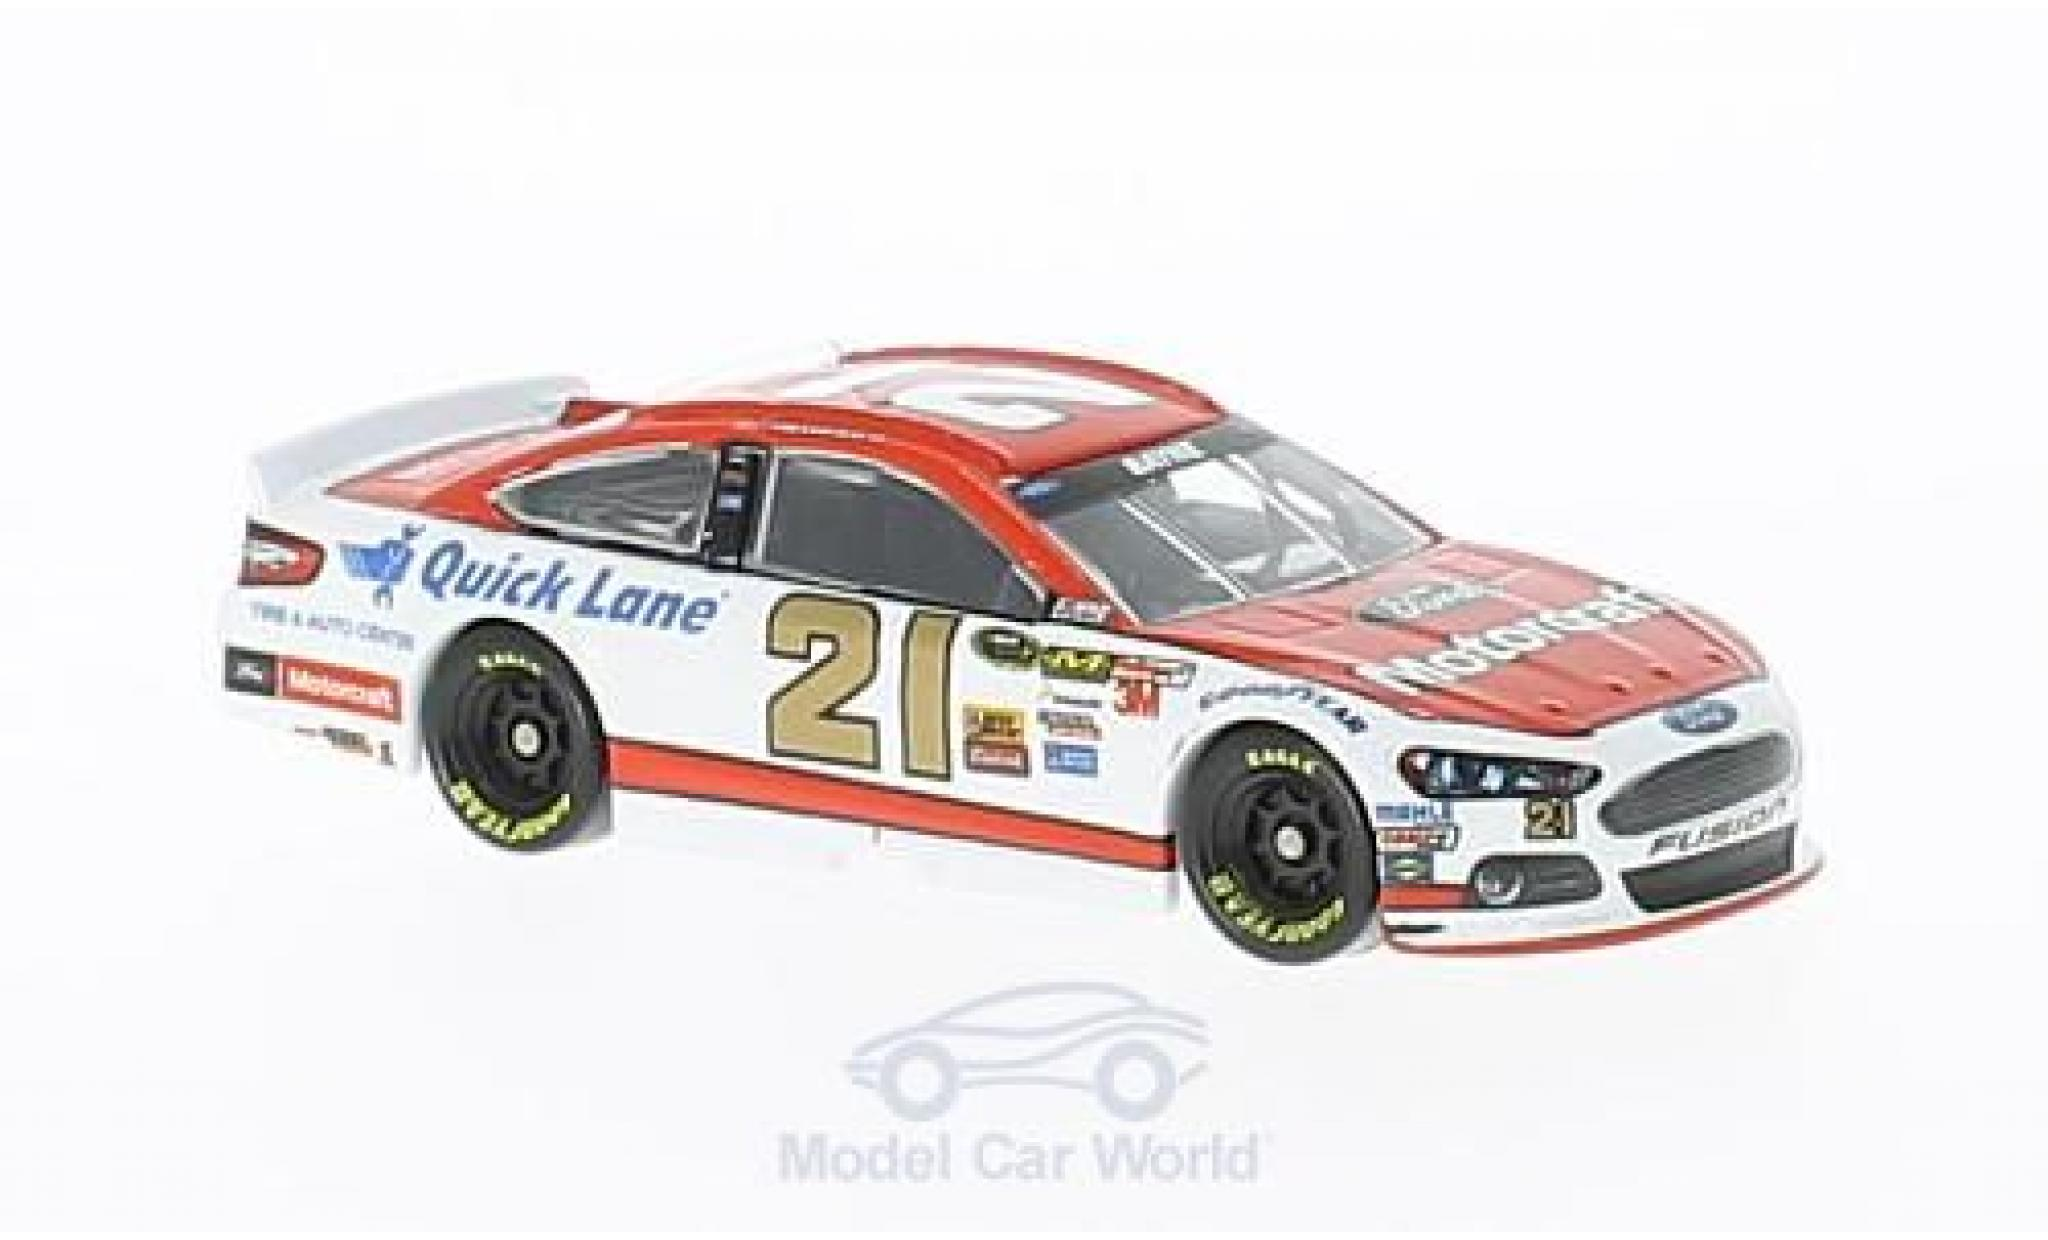 Ford Fusion 1/64 Lionel Racing No.21 wood 21brougehers Motorcraft Nascar 2014 T.Bayne